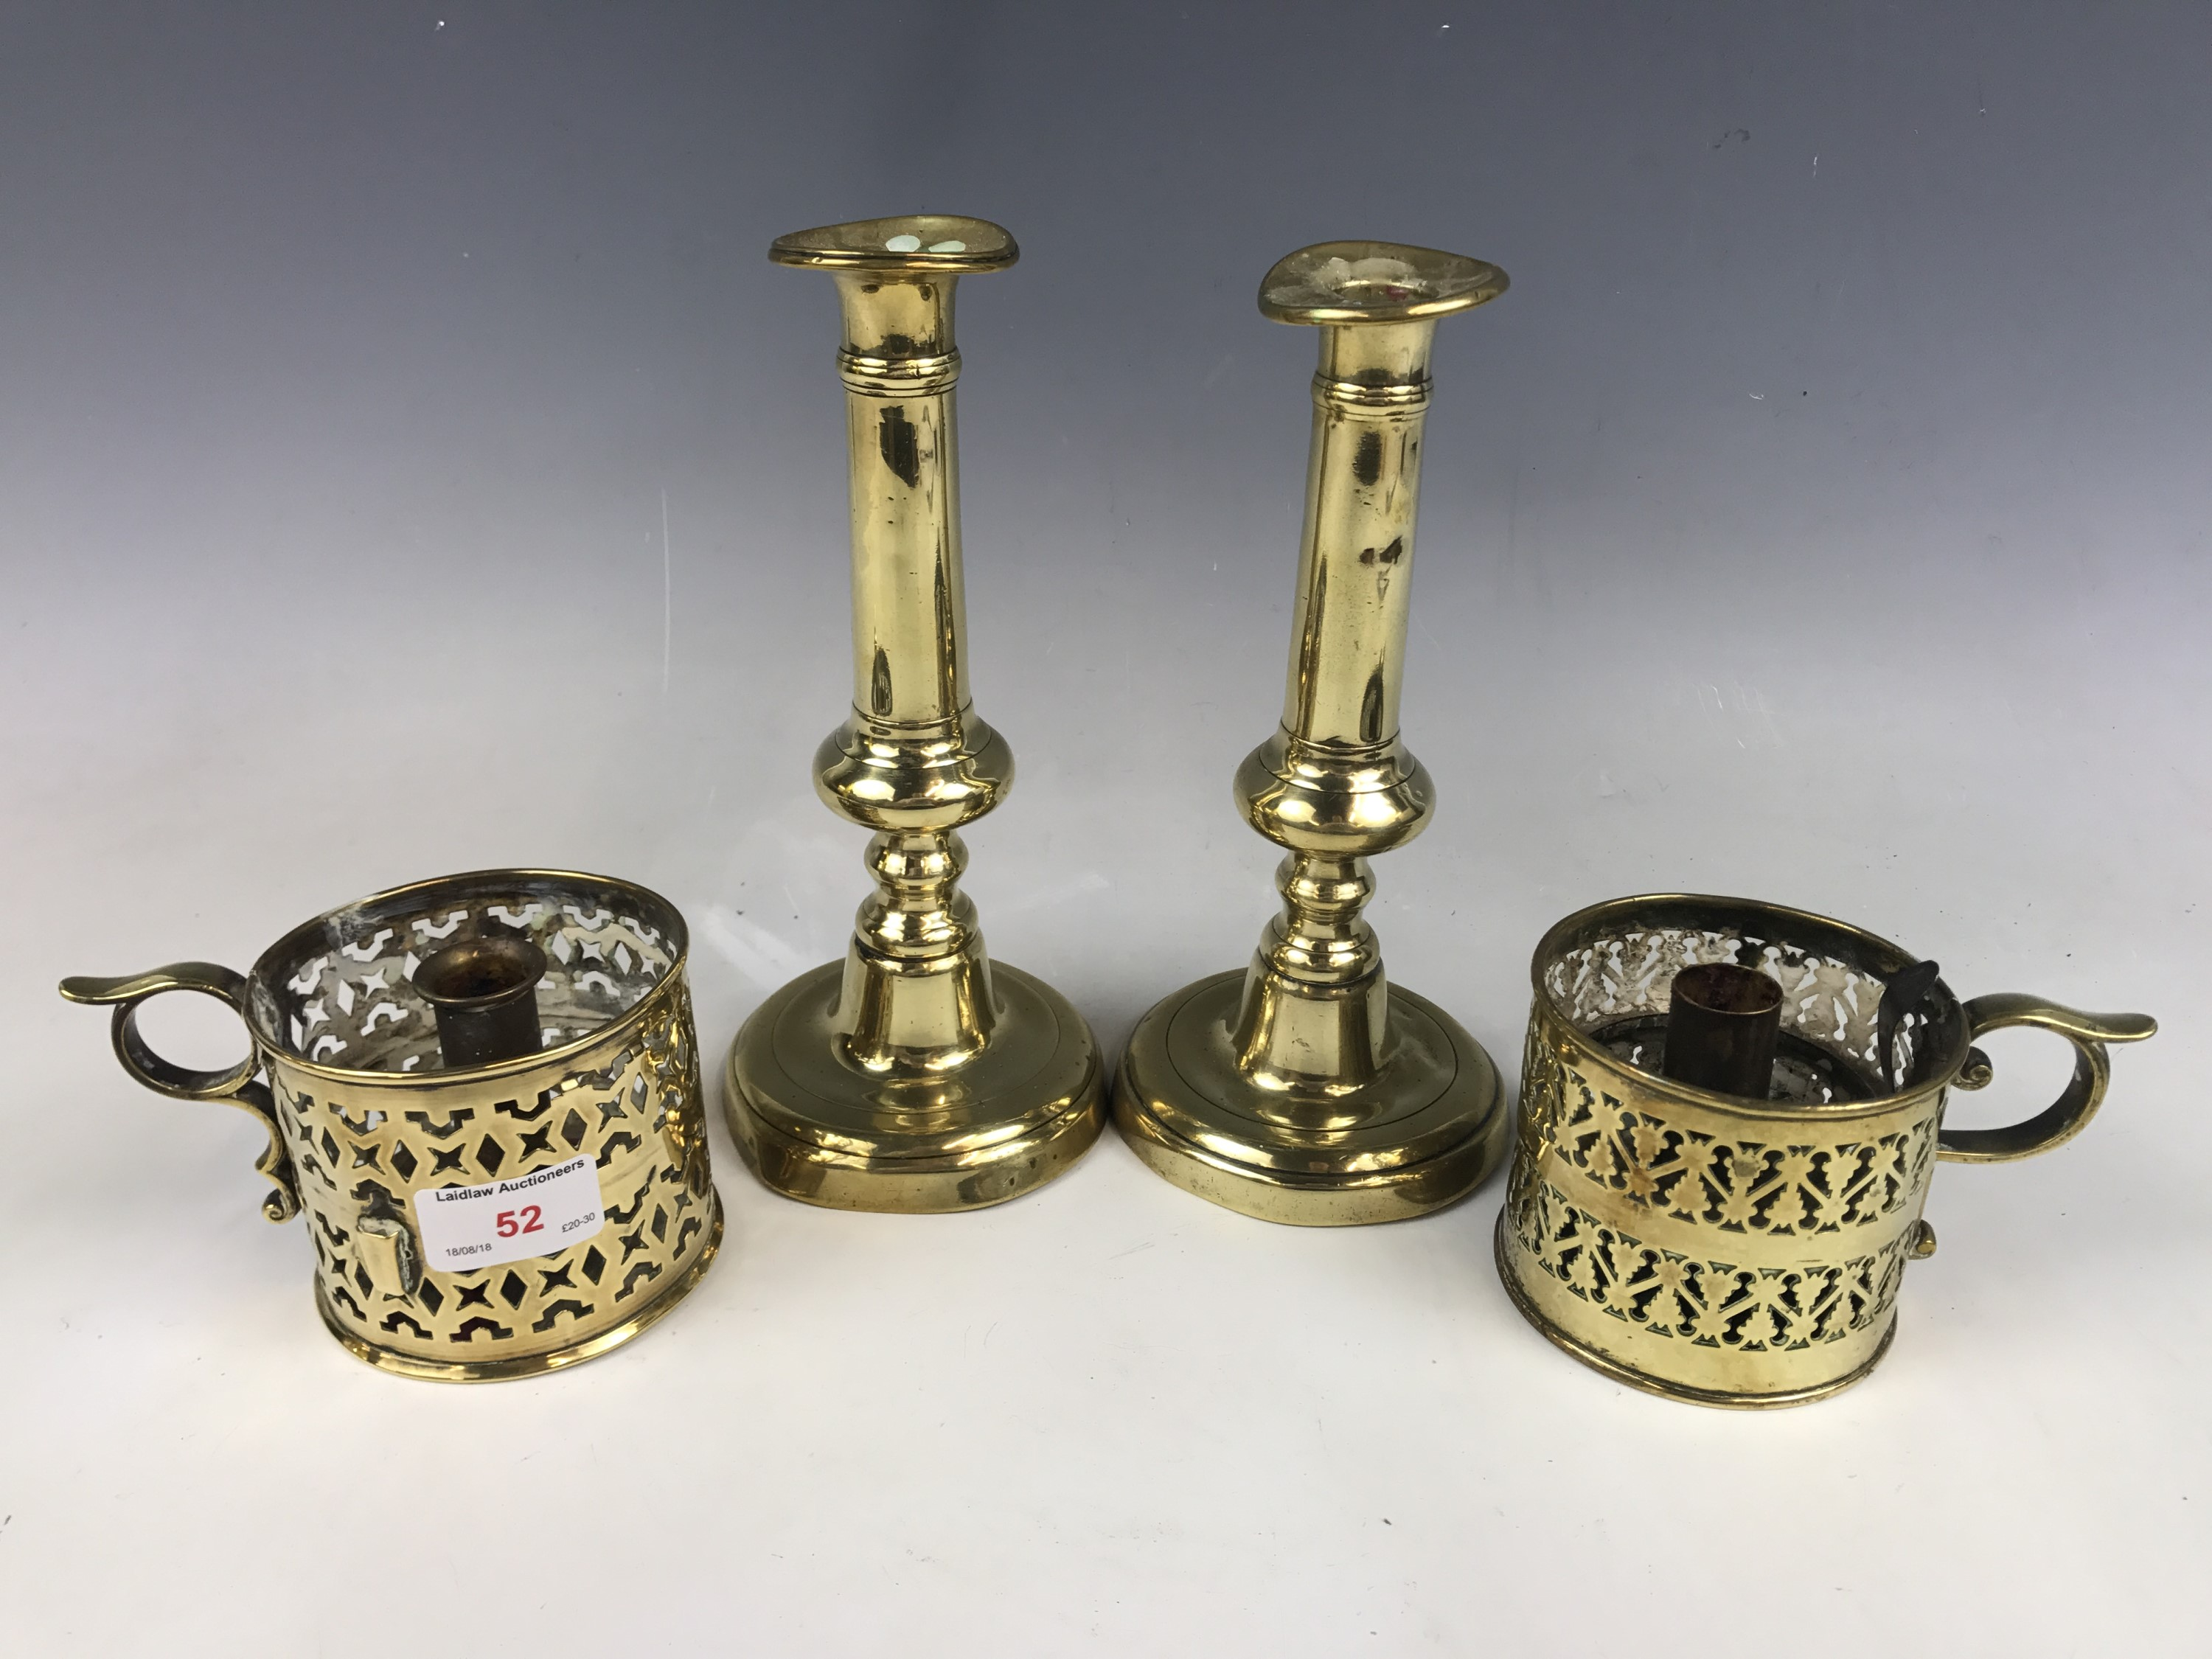 Lot 52 - A pair of early Victorian brass push-eject candlesticks together with a pair of early 19th Century